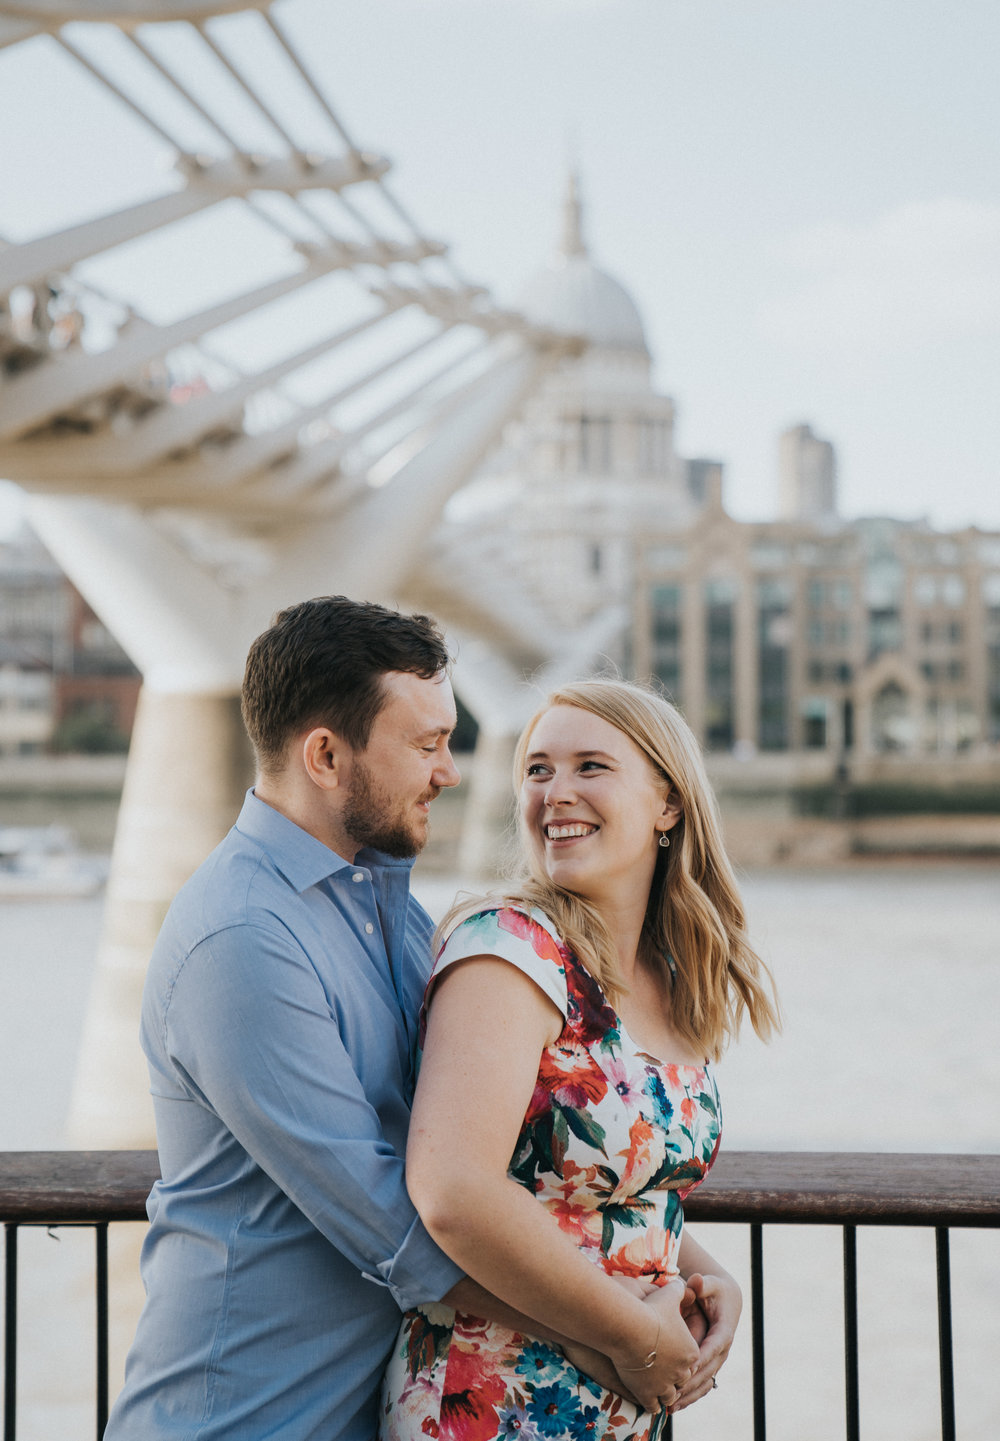 st-paul's-cathedral-millenium-bridge-engagement-wedding-london-photography-videography-02